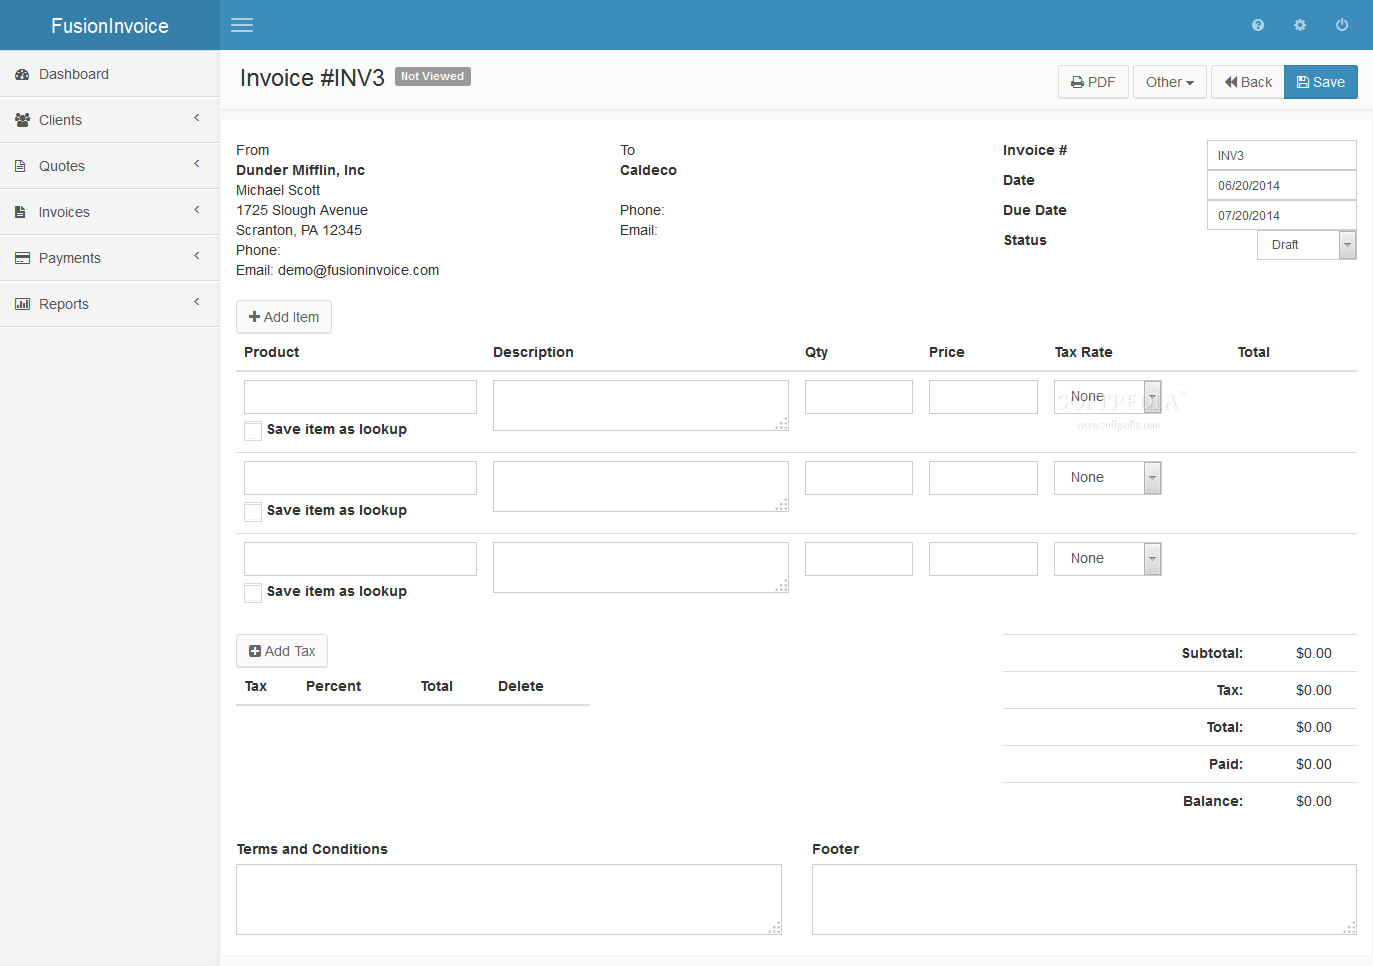 FusionInvoice - screenshot #9